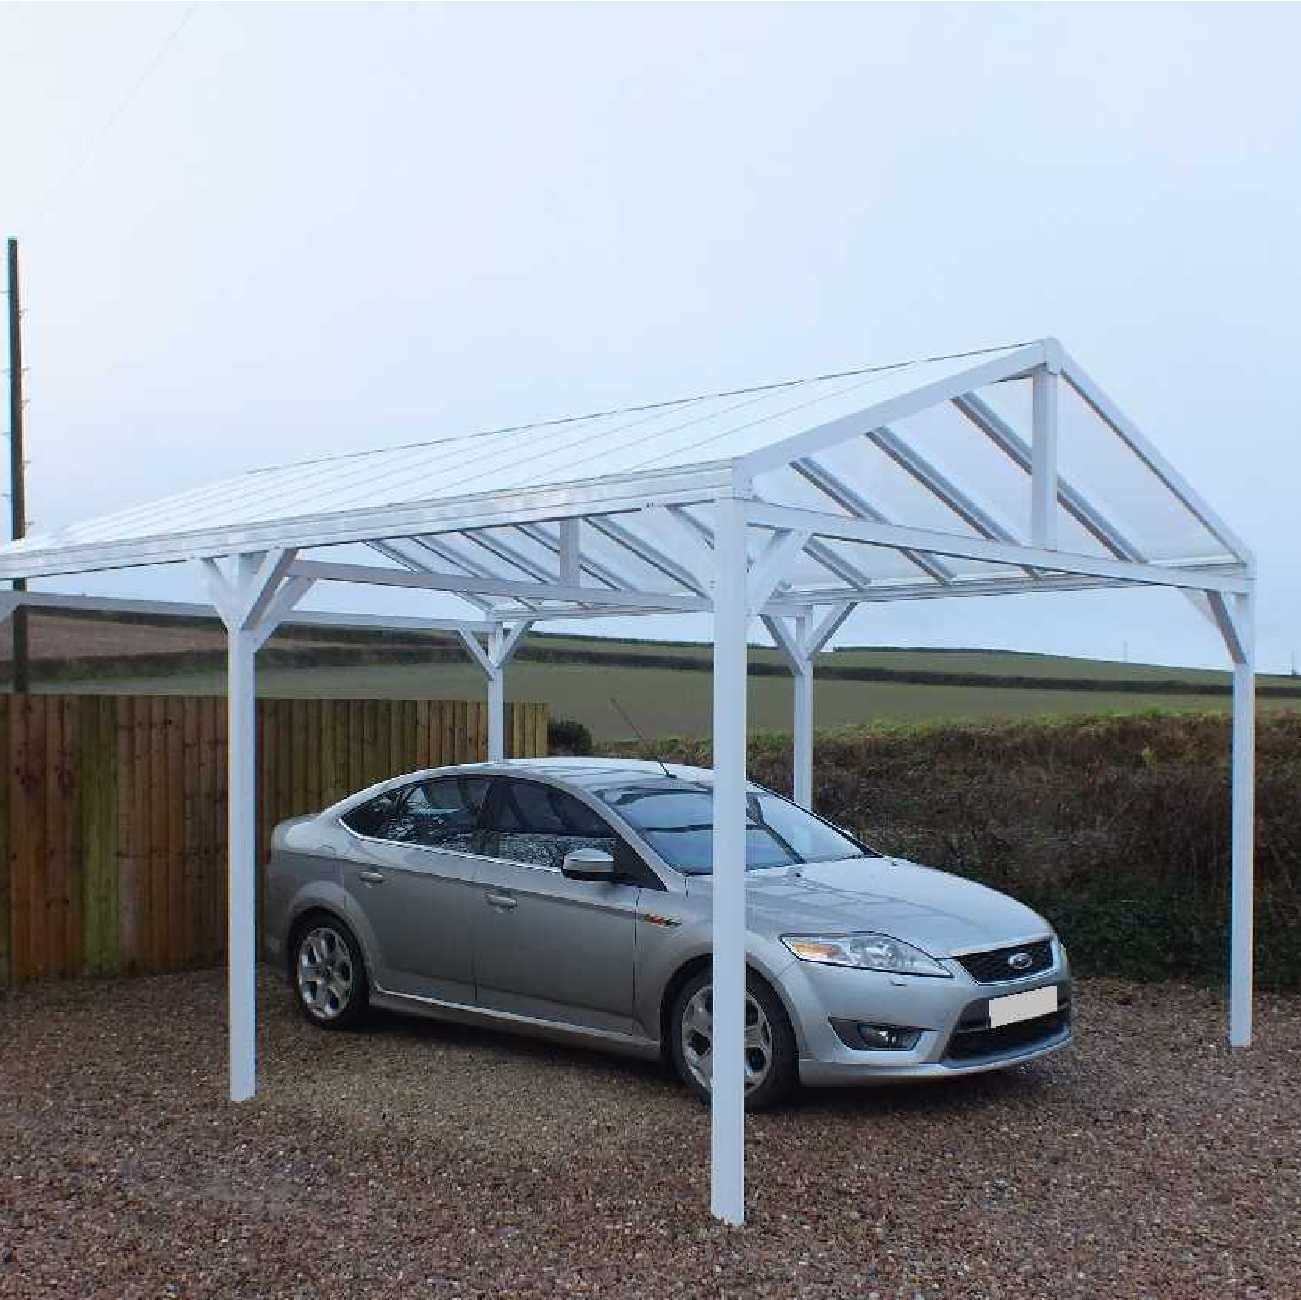 Affordable Omega Smart Free-Standing, Gable-Roof (type 1) Canopy with 16mm Polycarbonate Glazing - 7.4m (W) x 3.5m (P), (8) Supporting Posts